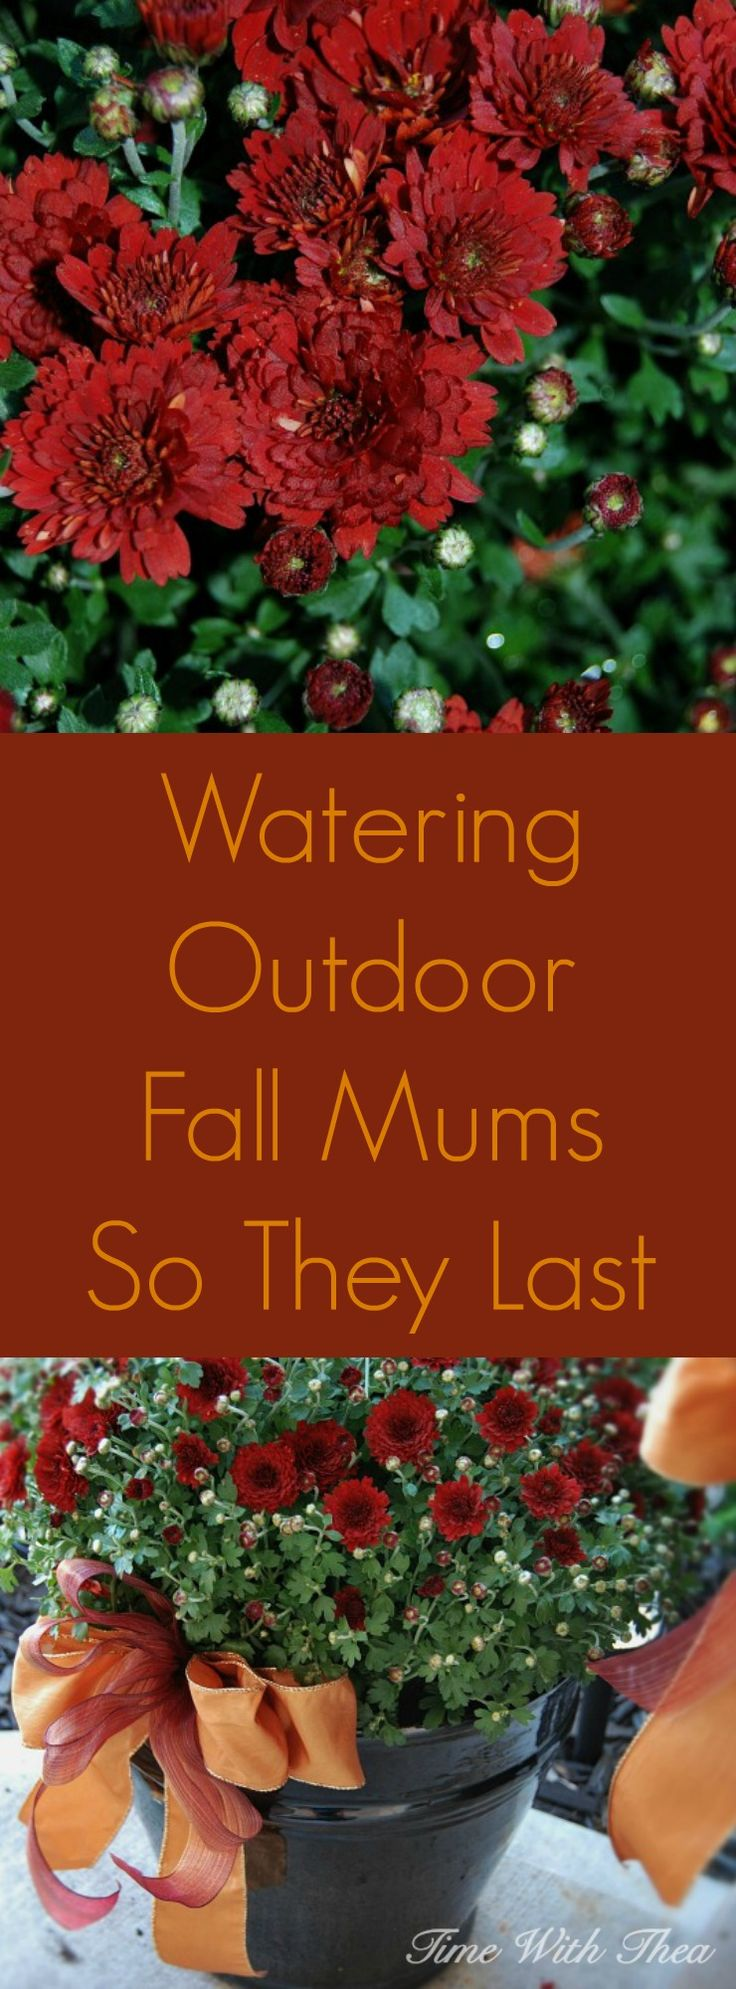 Watering Outdoor Fall Mums So They Last